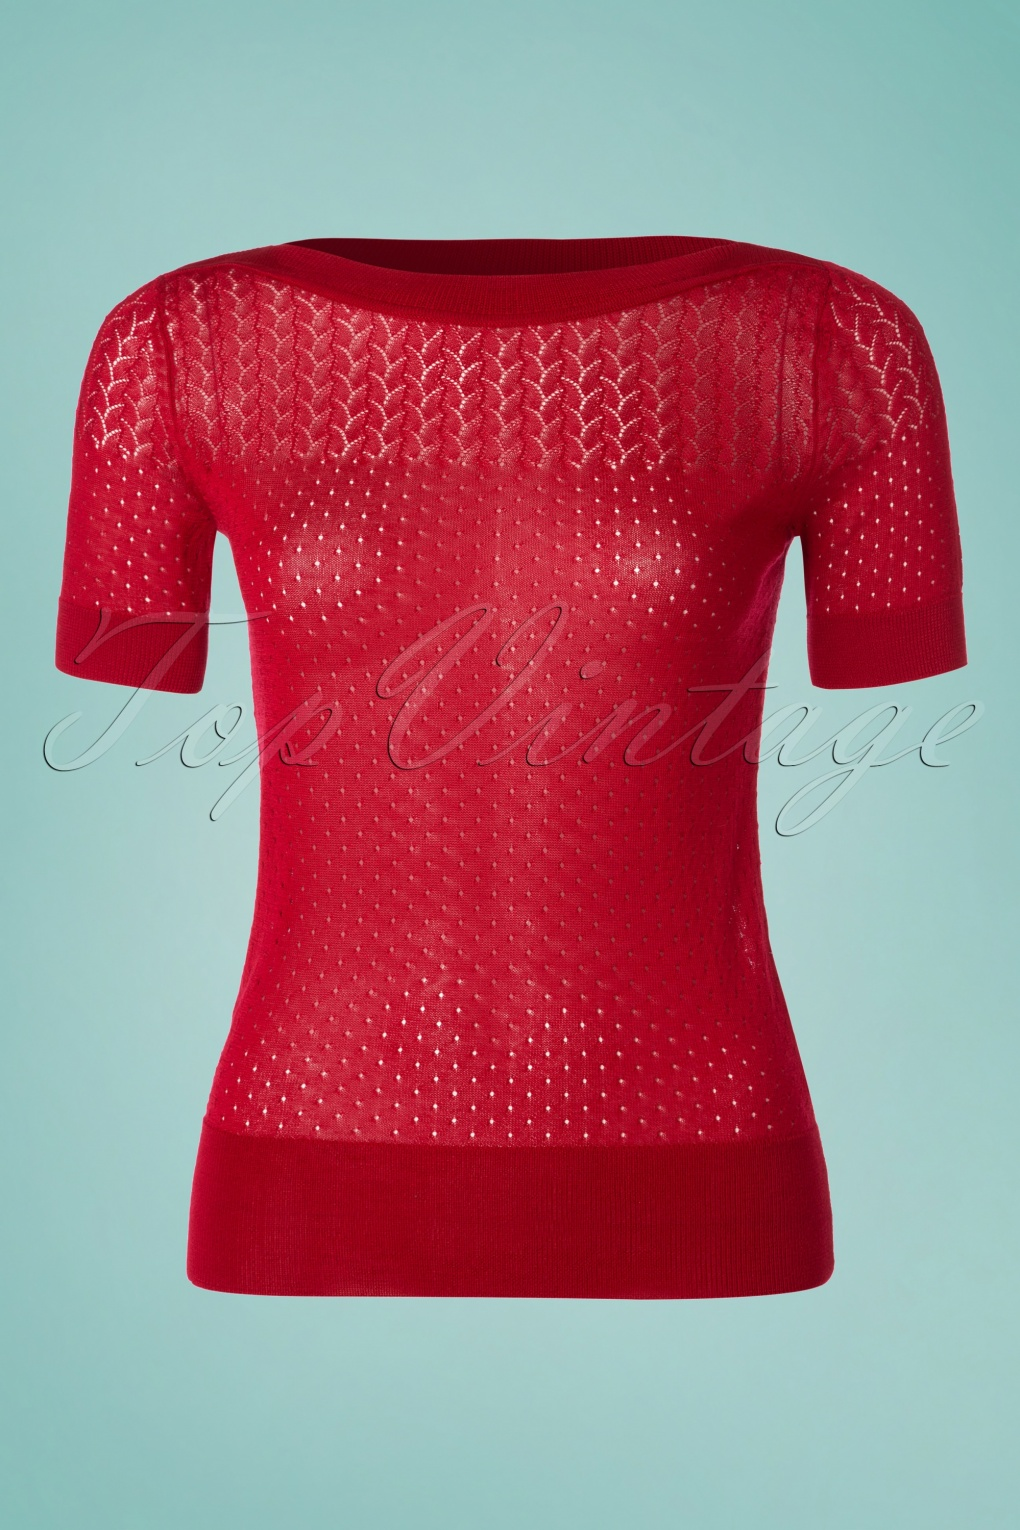 1950s Sweaters, 50s Cardigans, Twin Sweater Sets 50s Audrey Parterre Top in Cherry Red £78.88 AT vintagedancer.com